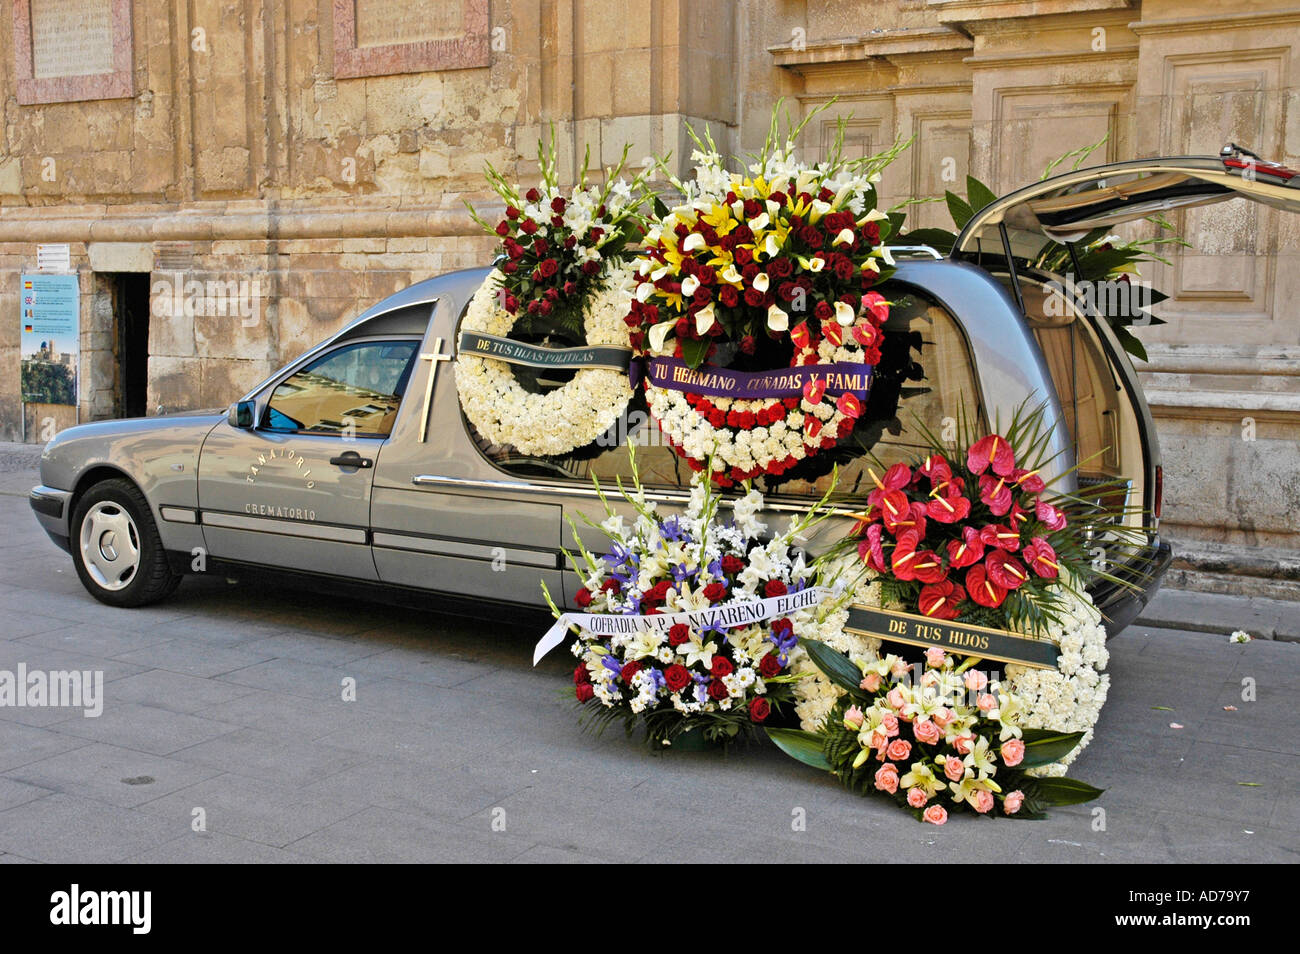 Hearse with mourning wreaths in front of the church at a funeral basilica santa maria